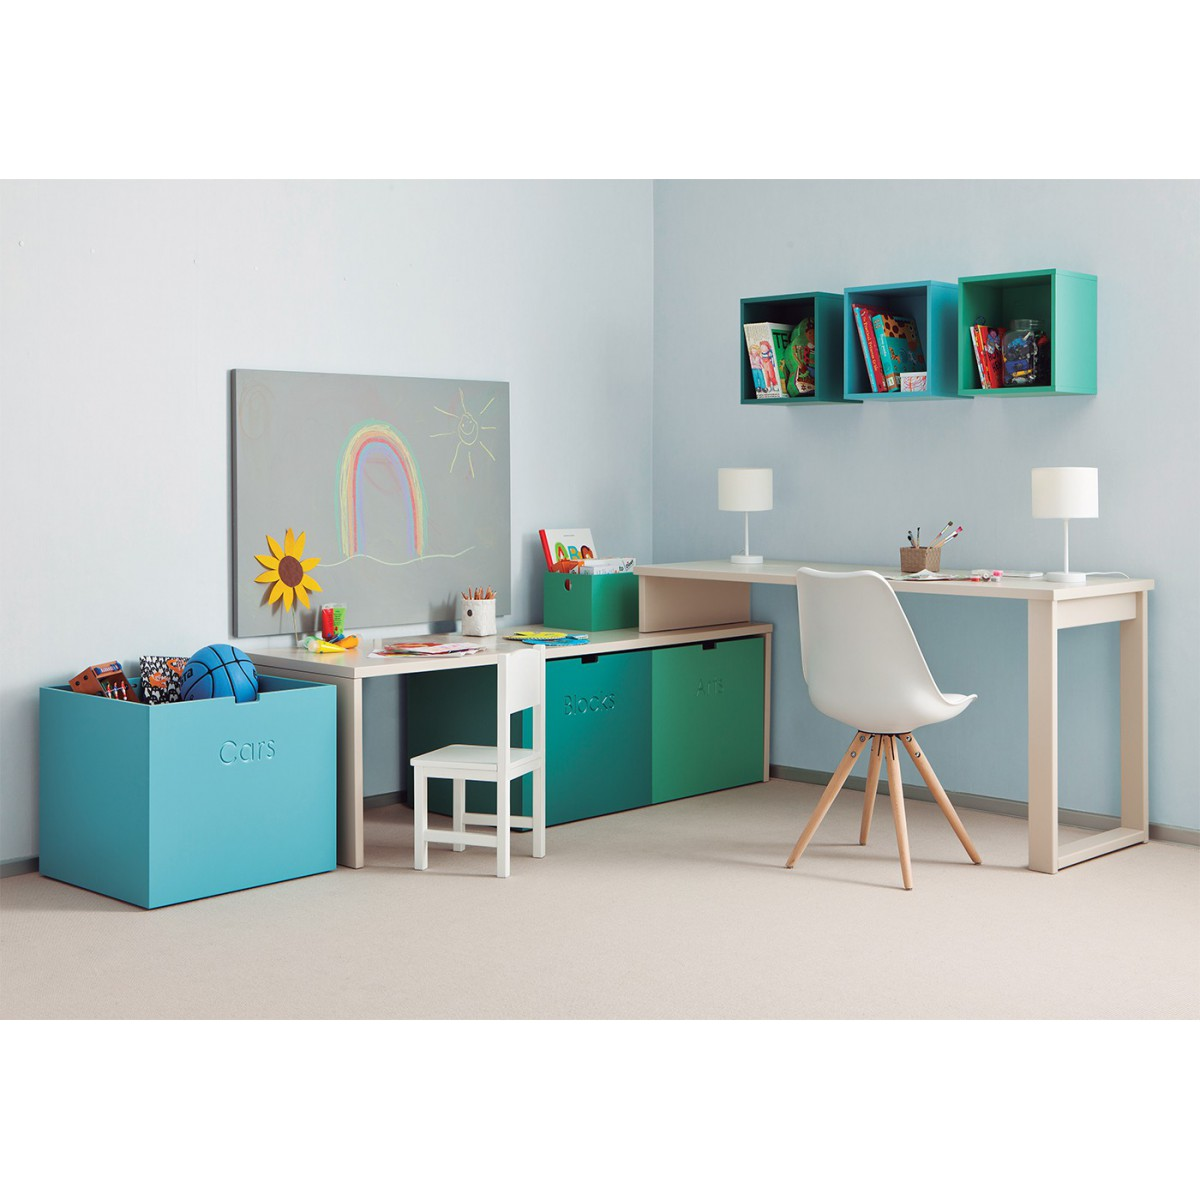 2 bureaux attenants pour enfants et juniors sign s asoral. Black Bedroom Furniture Sets. Home Design Ideas